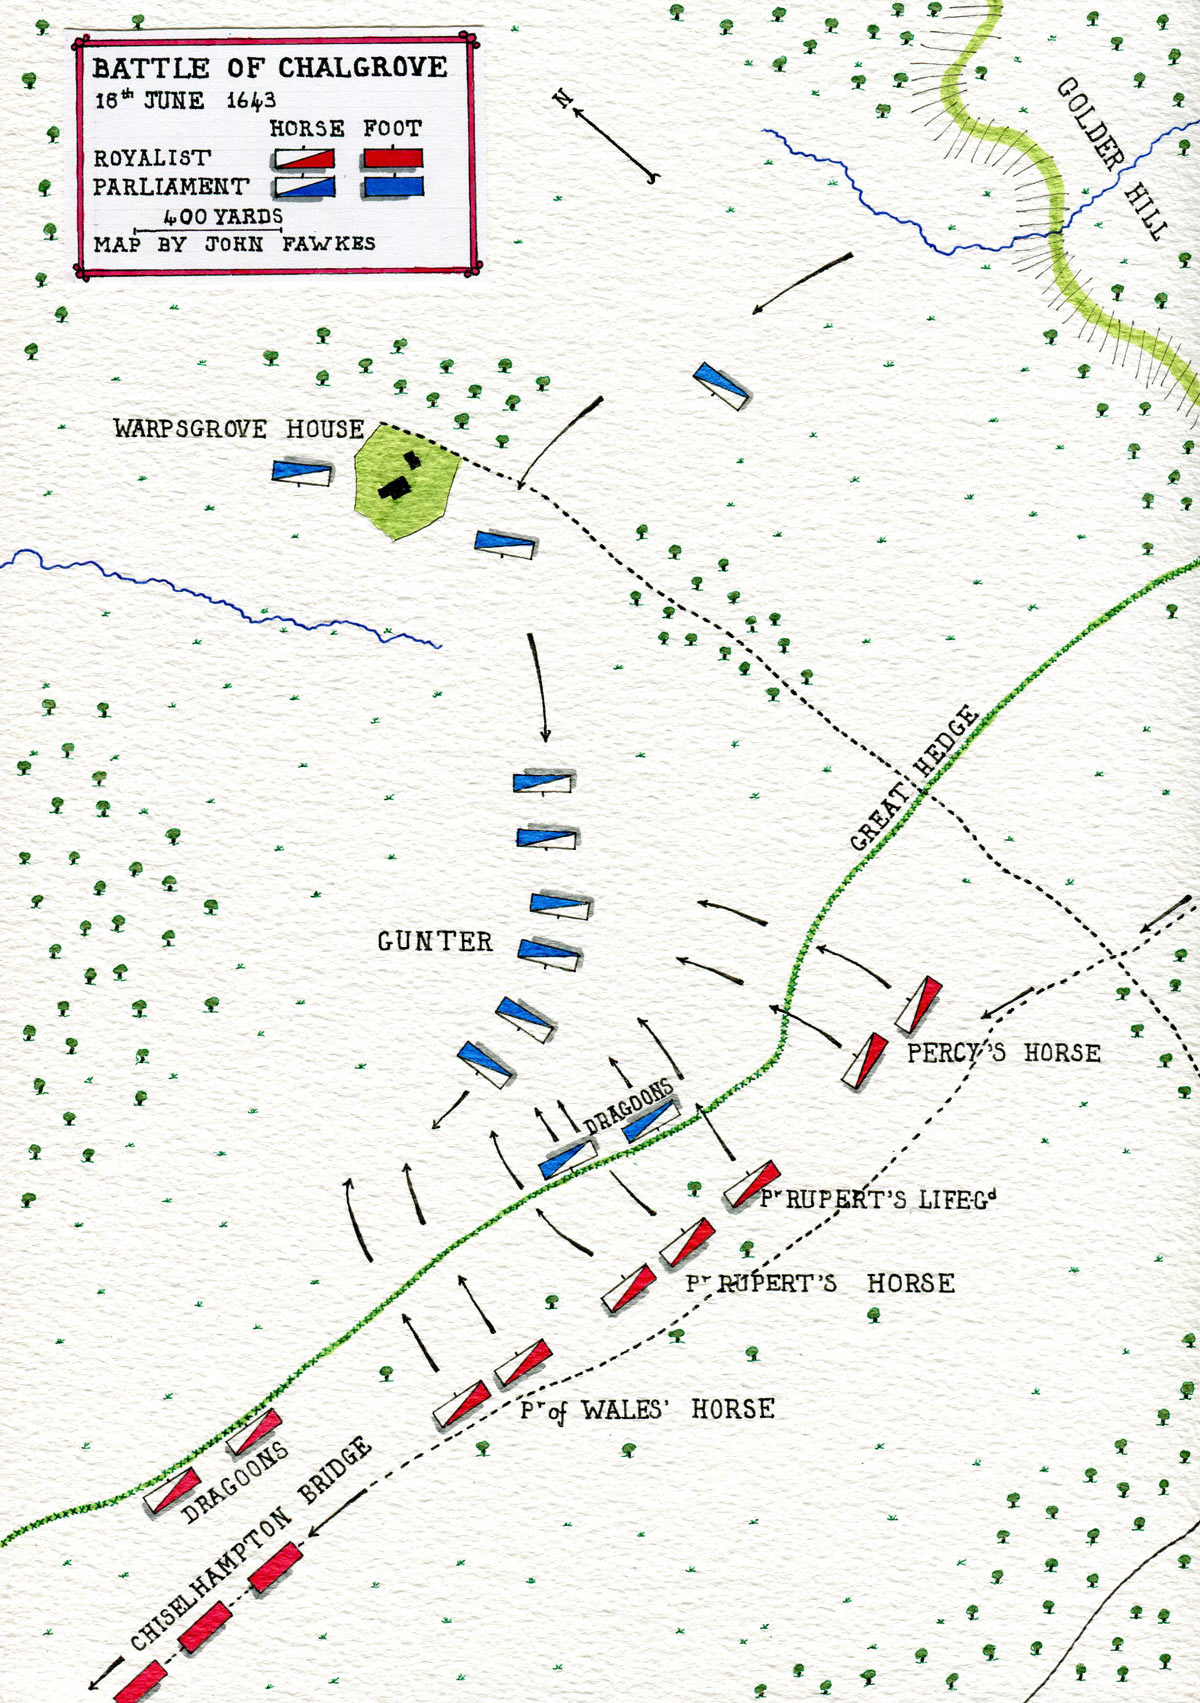 Map of the Battle of Chalgrove 18th June 1643 in the English Civil War: map by John Fawkes